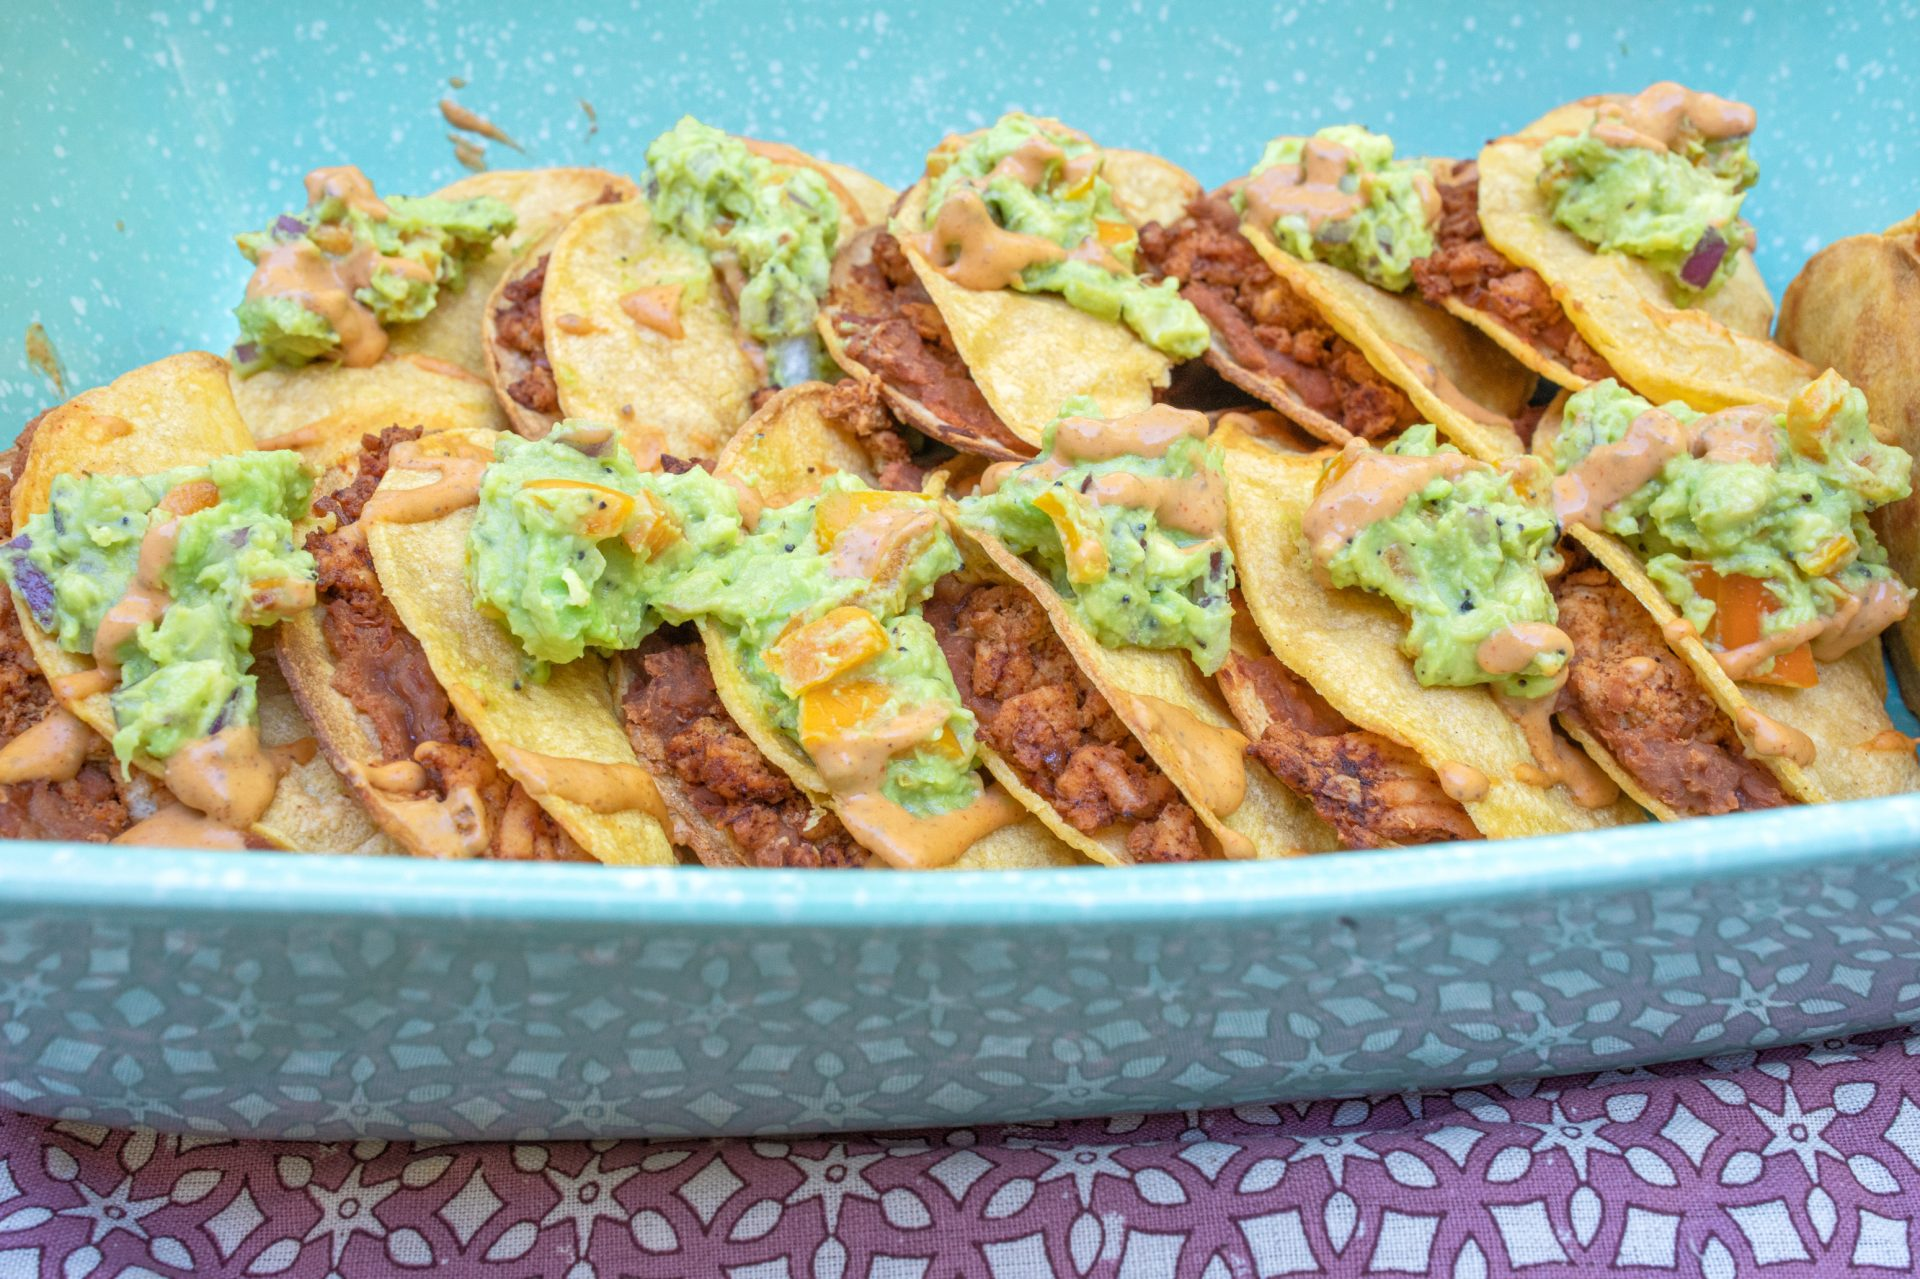 Gluten free, dairy free, guacamole, taco, tacos, taco night, corn tortilla tacos, chicken, beans, healthy, diet friendly, lighter, healthy cooking, recipe, dinner night, taco Tuesday